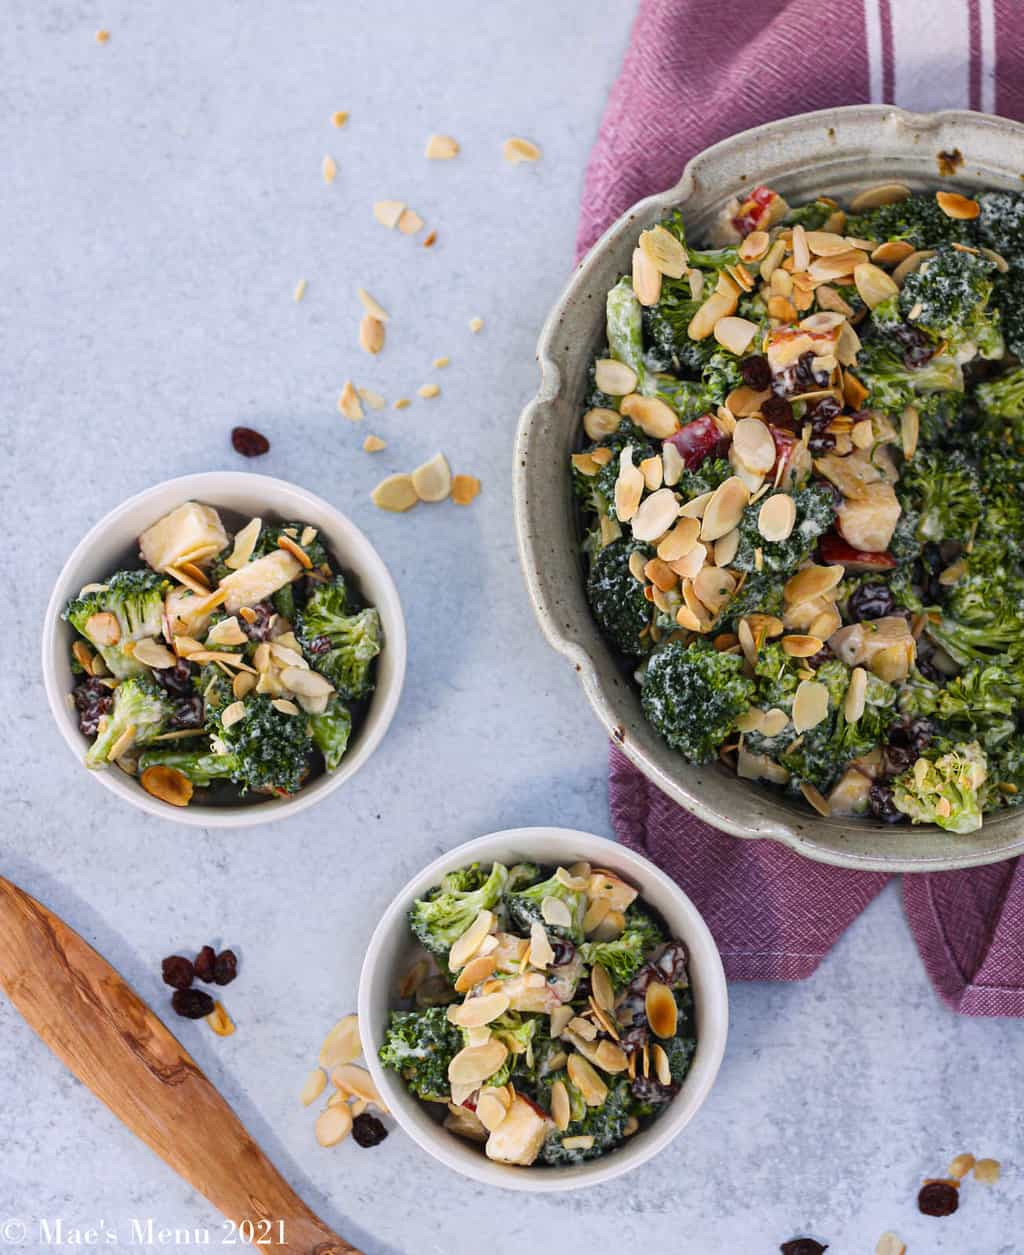 An up-close overhead shot of two small bowls of broccoli raisin salad next to a large bowl of the salad